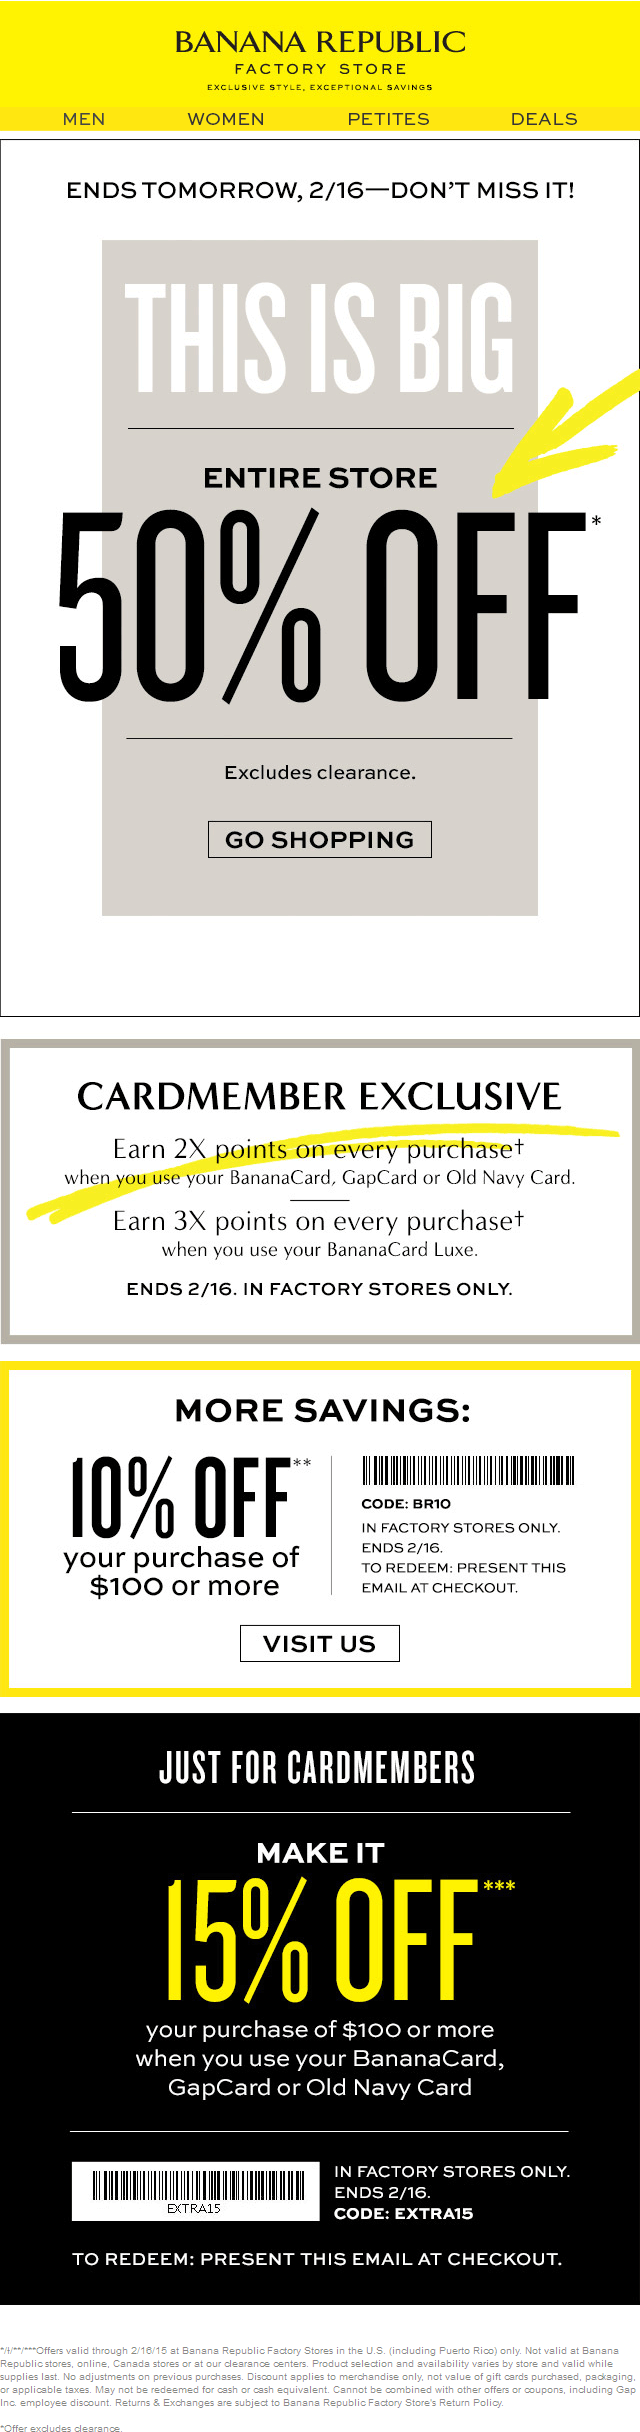 Banana Republic Factory Coupon August 2017 Everything is 50% off & more today at Banana Republic Factory stores